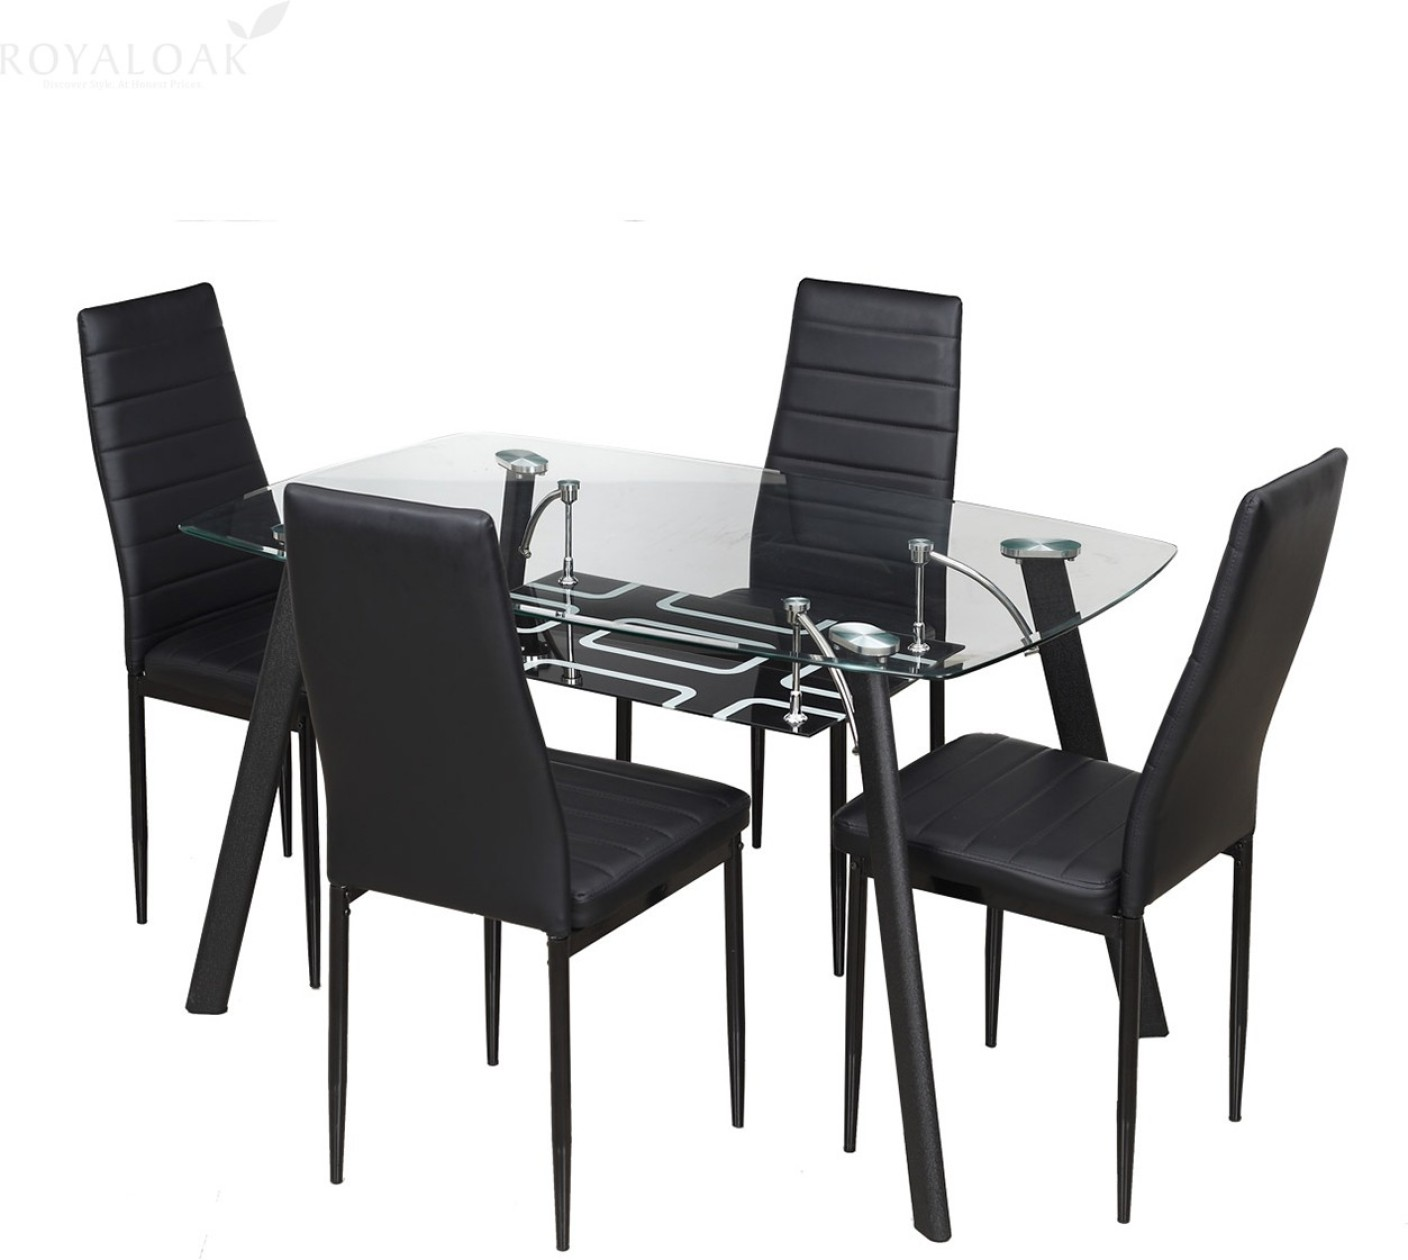 100 Barbie Dining Room Set Mattel Modern Mid  : 4 seater black carbon steel milan royaloak black original imaexbsgq6hhc34j from 108.61.189.51 size 1408 x 1260 jpeg 131kB